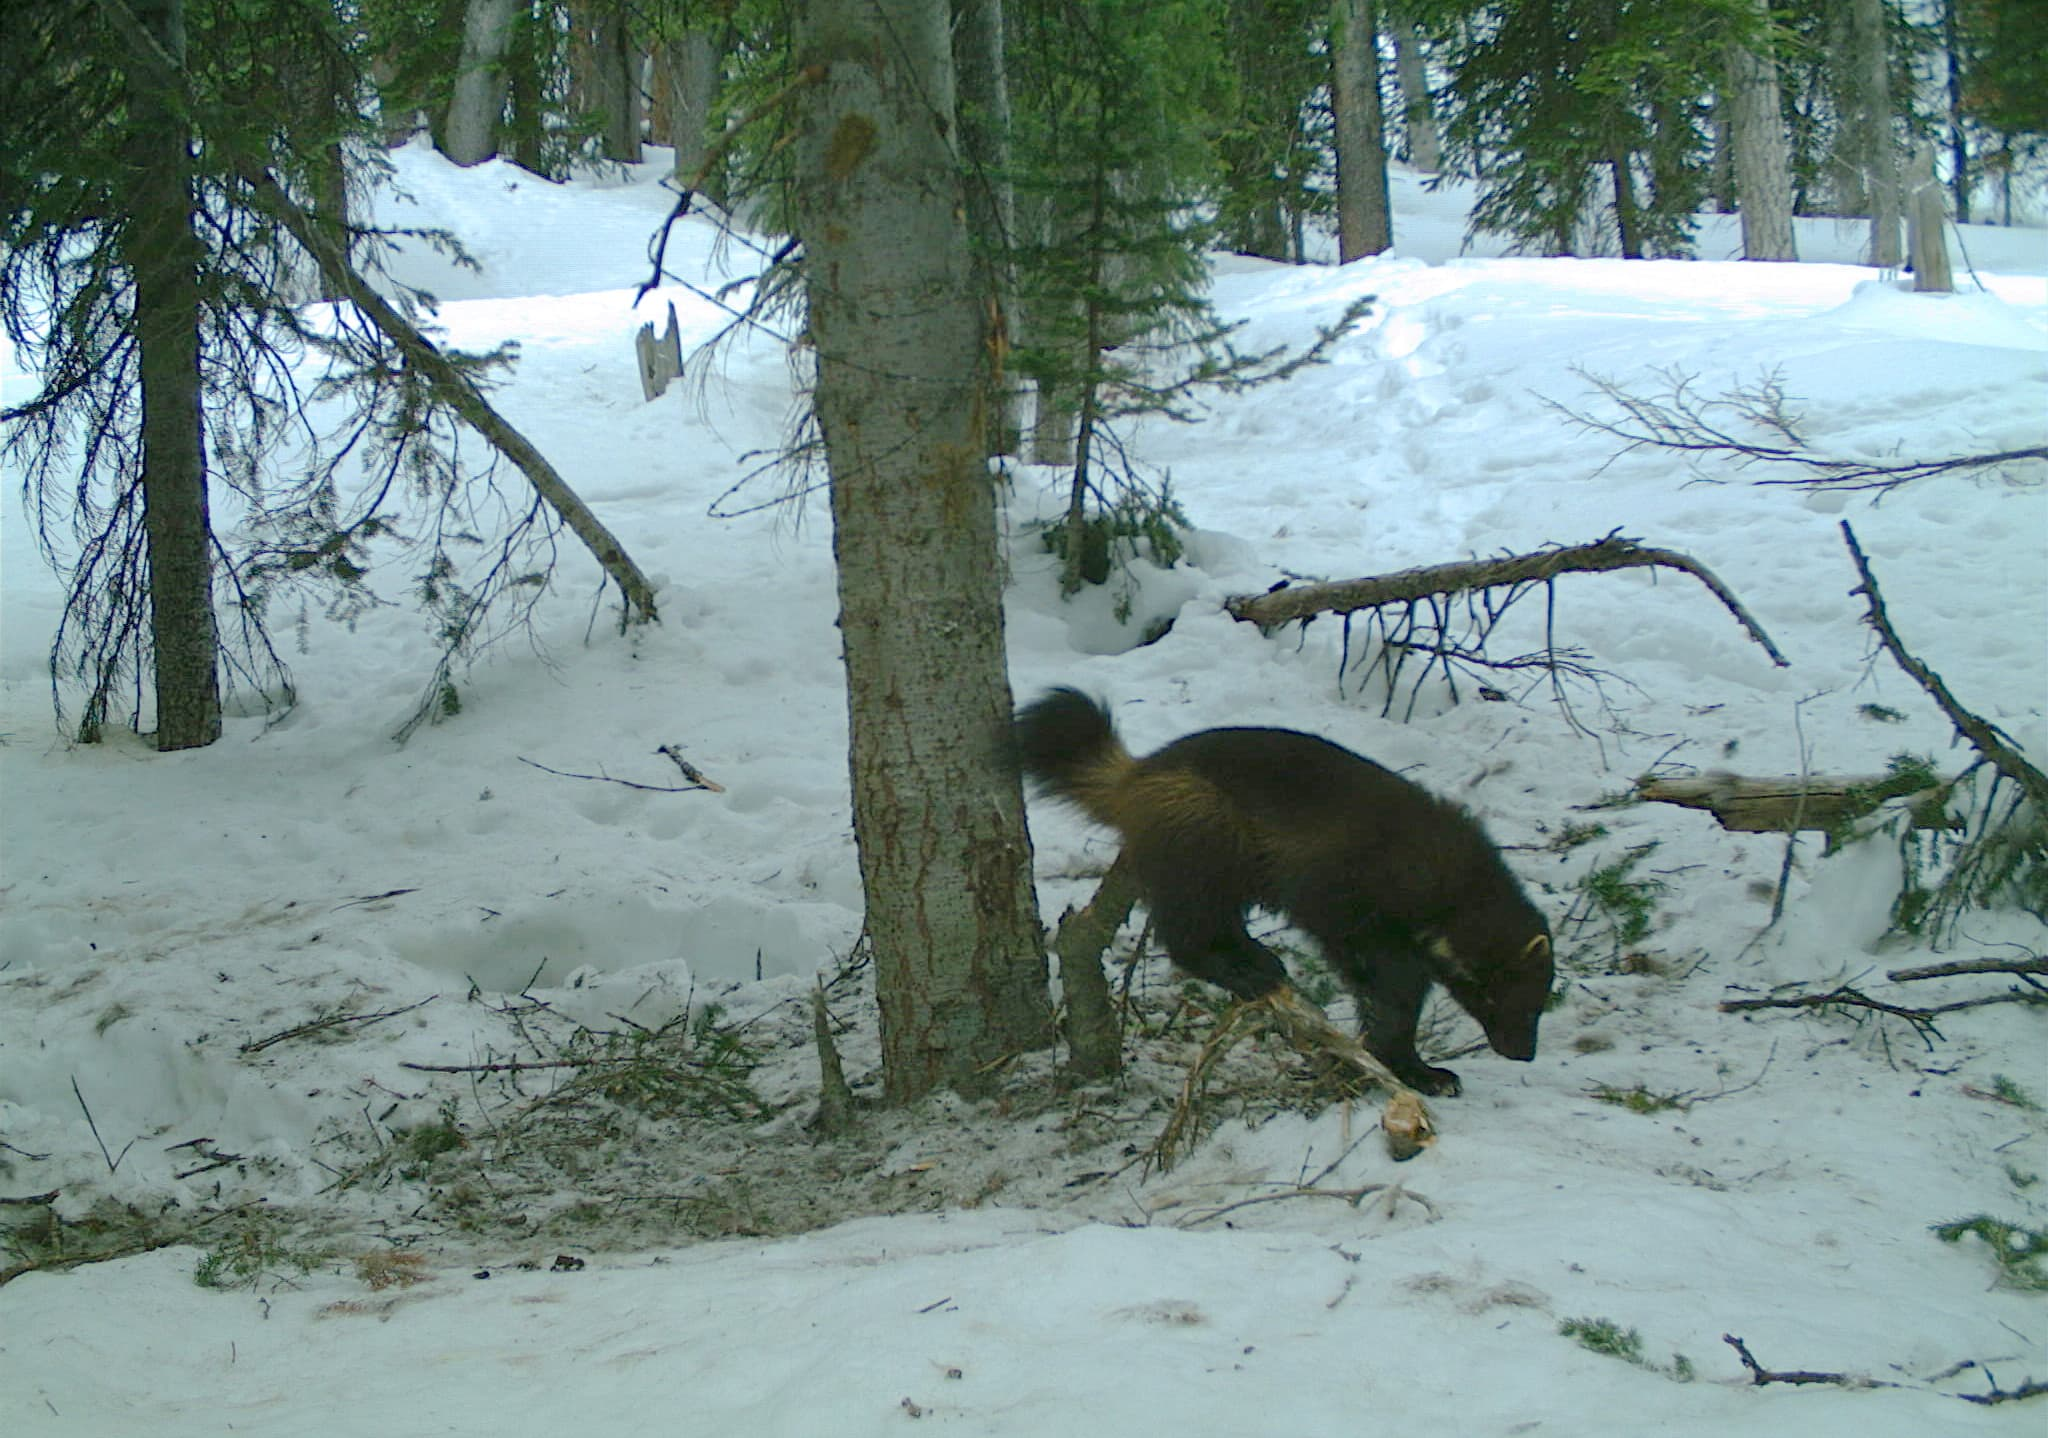 Researchers measure reach of wolverines in Wyoming